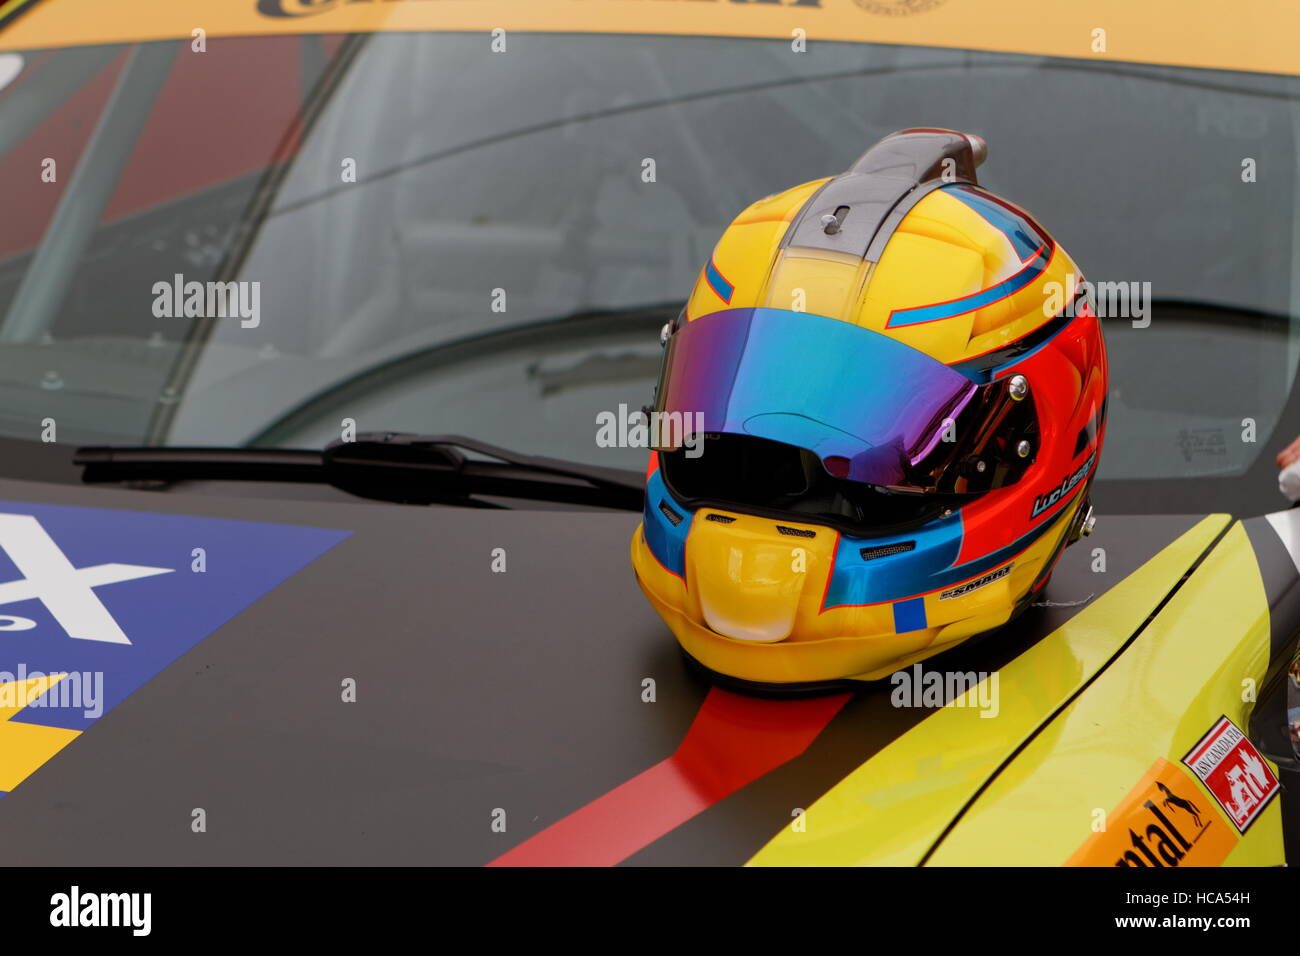 A race driver's helmet on the hood of a car ready to race in the CTCC, Canadian Touring Car Championship - Stock Image